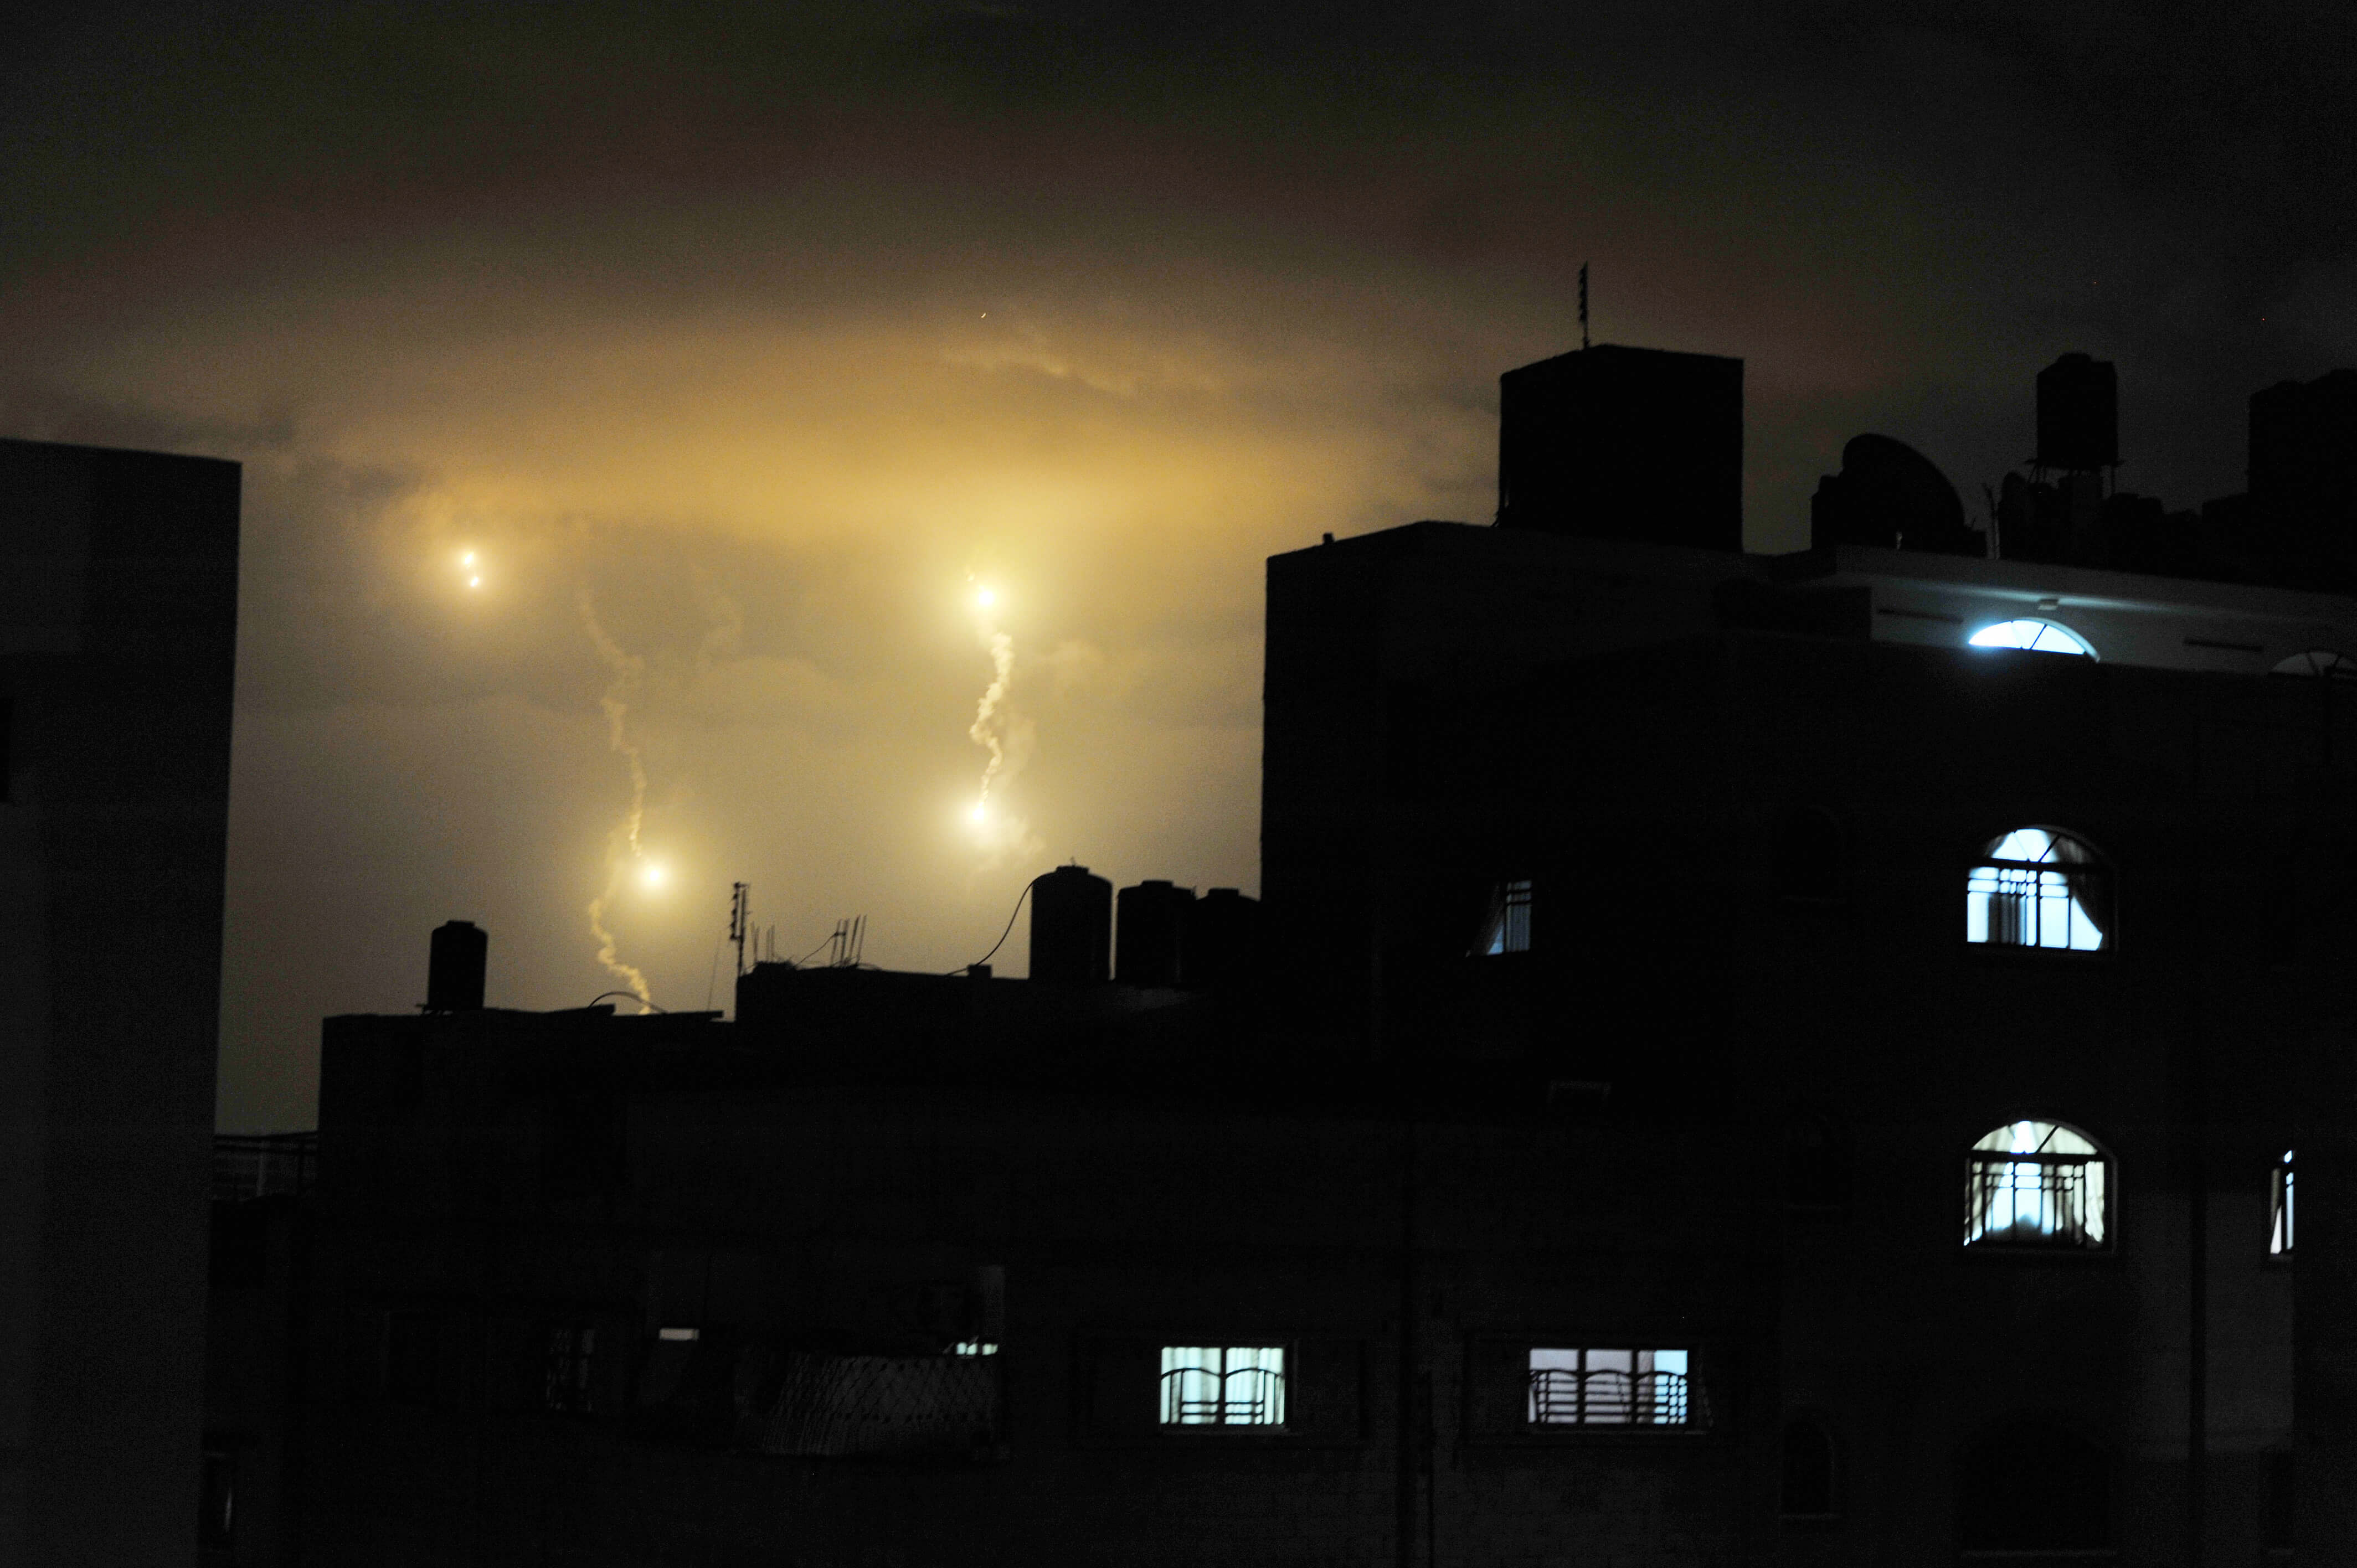 Flares from Israeli forces light up the night sky of Gaza City in the course of the hostilities in the Gaza Strip in July 2014 ©UN Photo/Shareef Sarhan